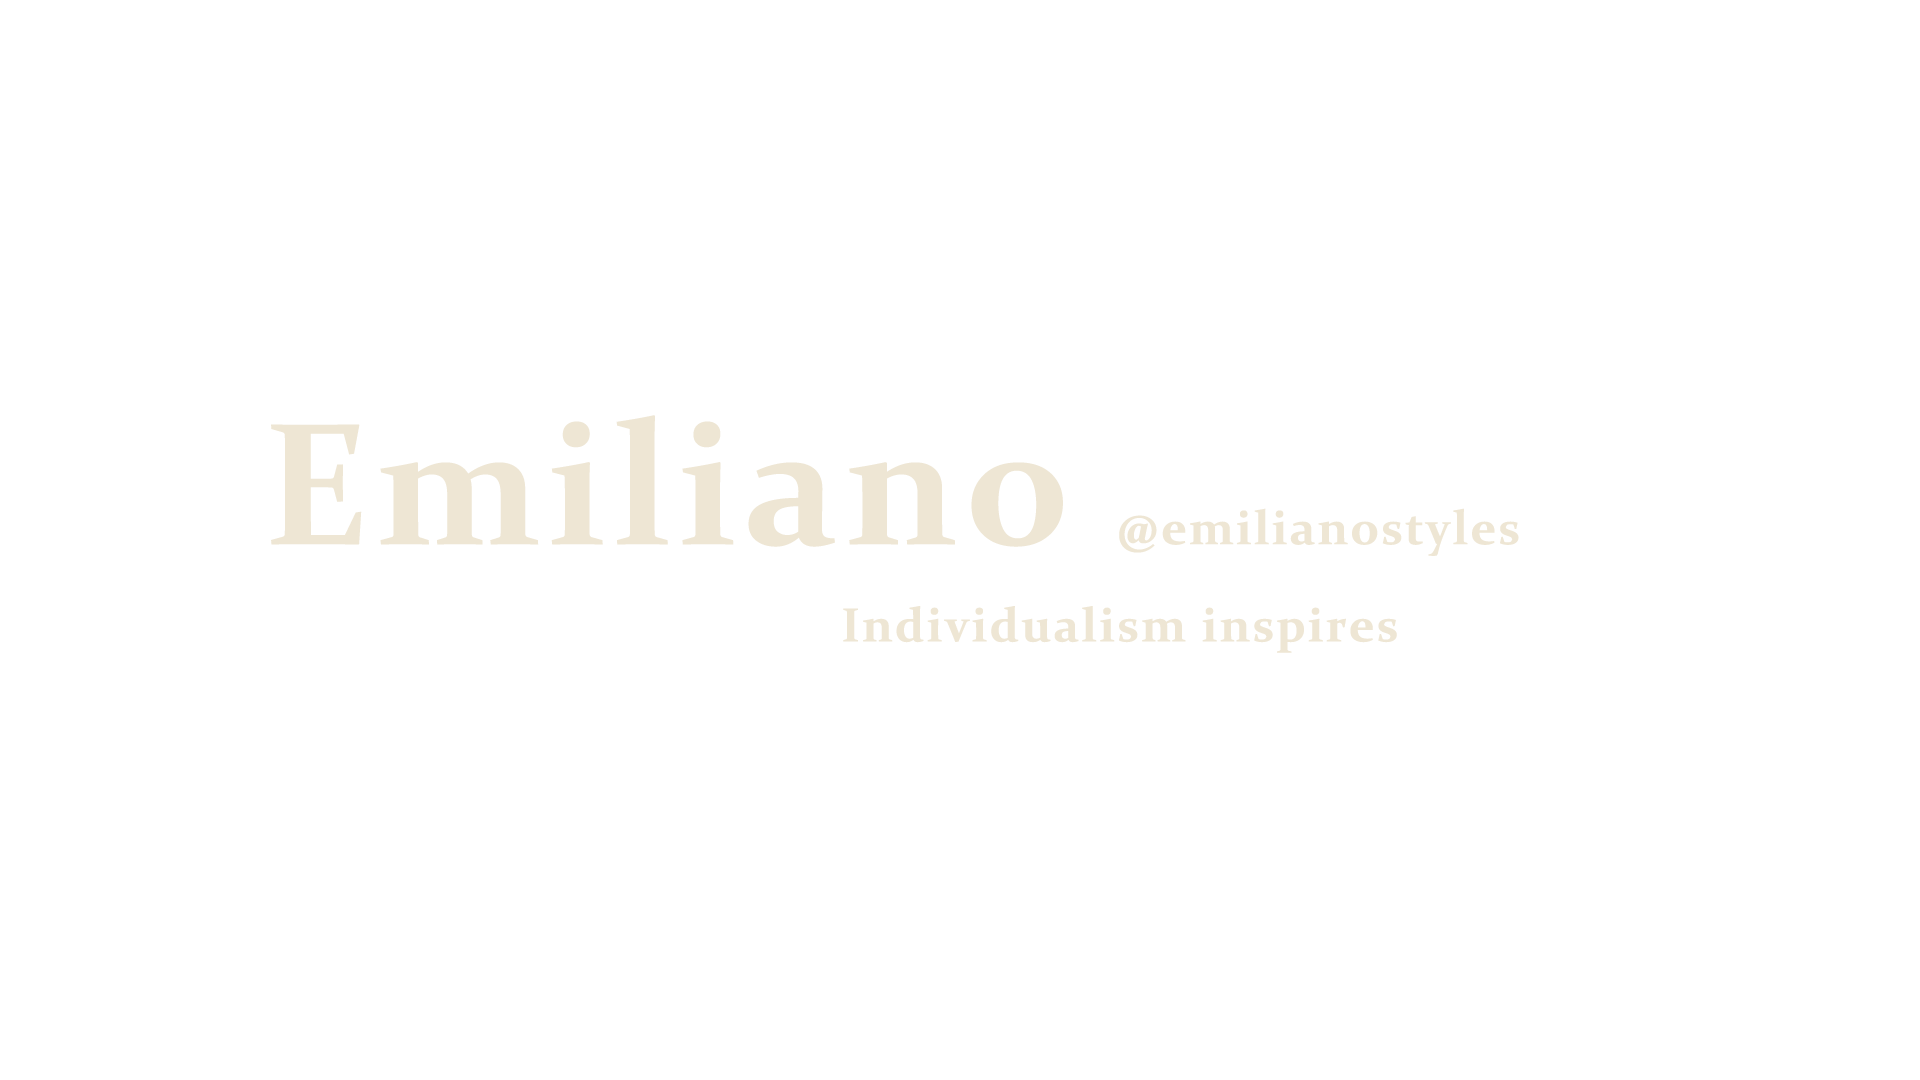 Emiliano_2.png